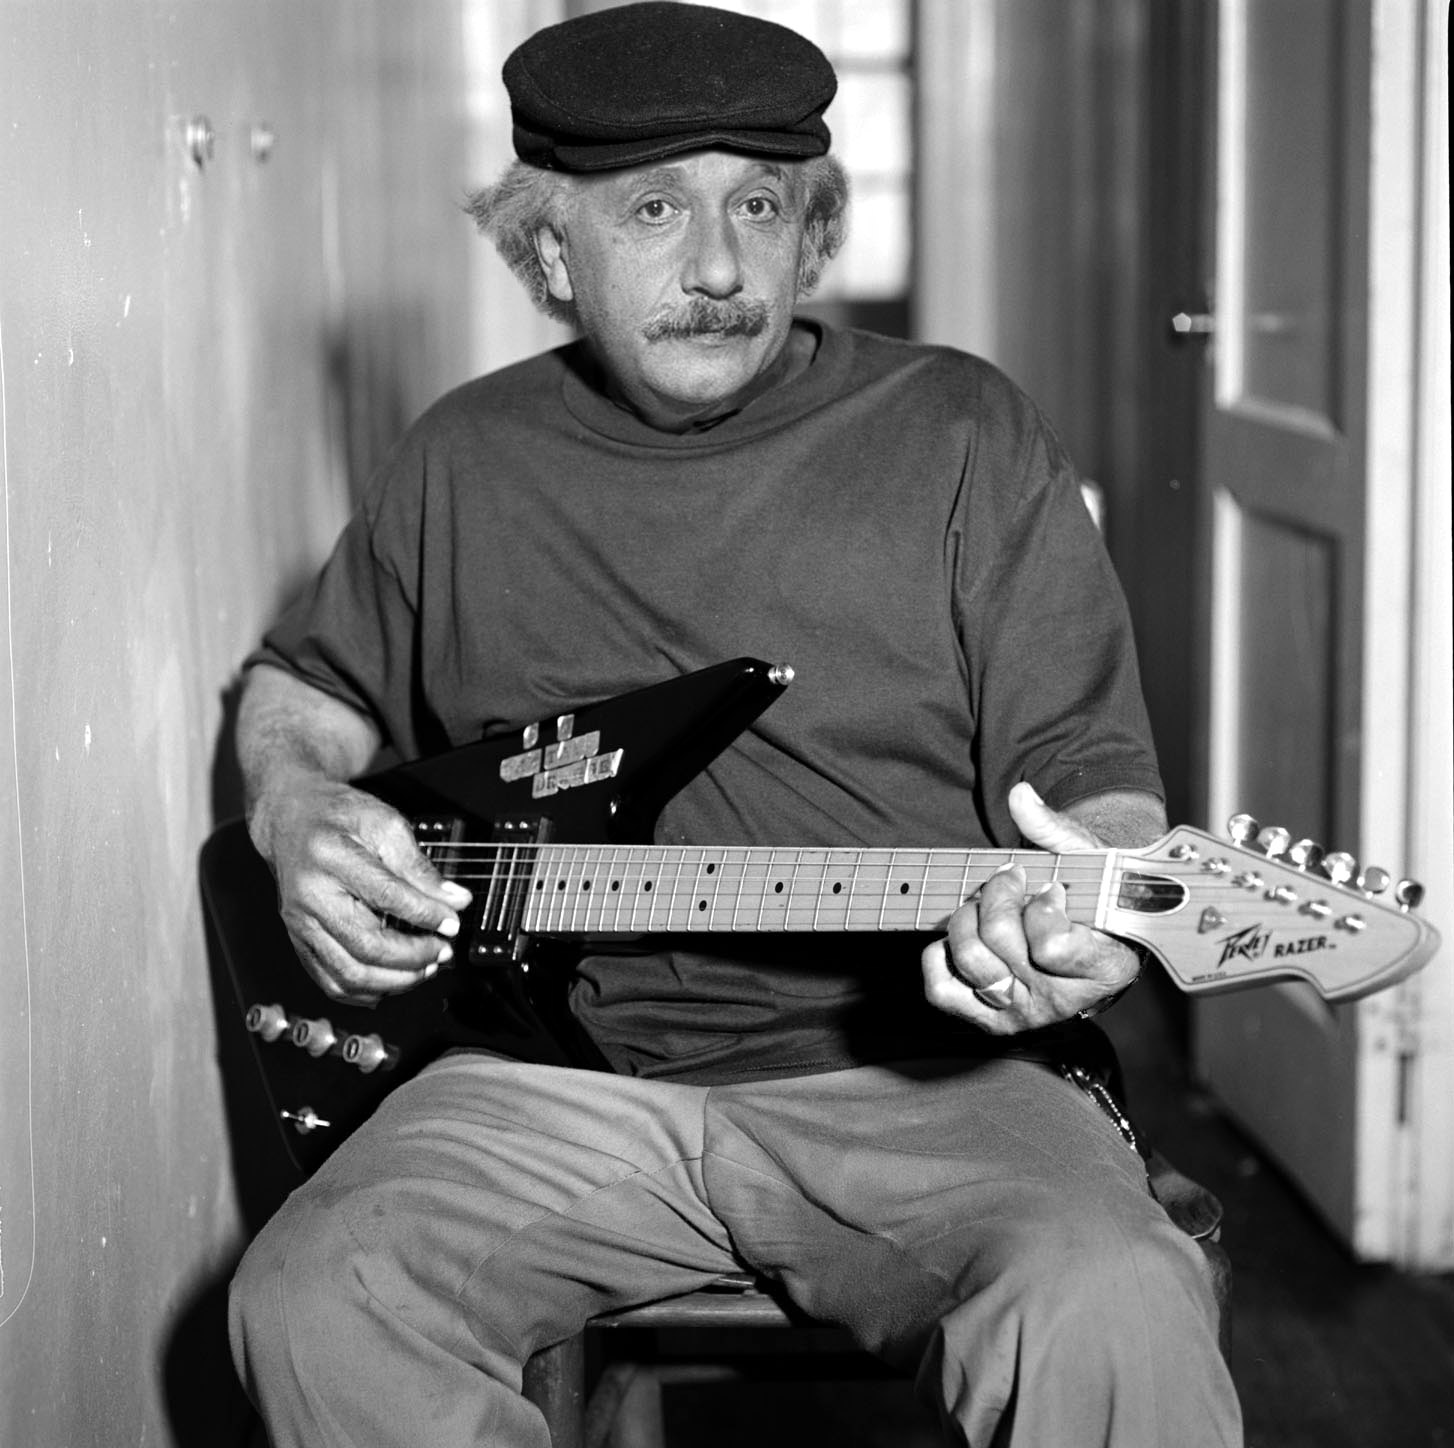 Foto 3 albert-punk-rock-blues-einstein-